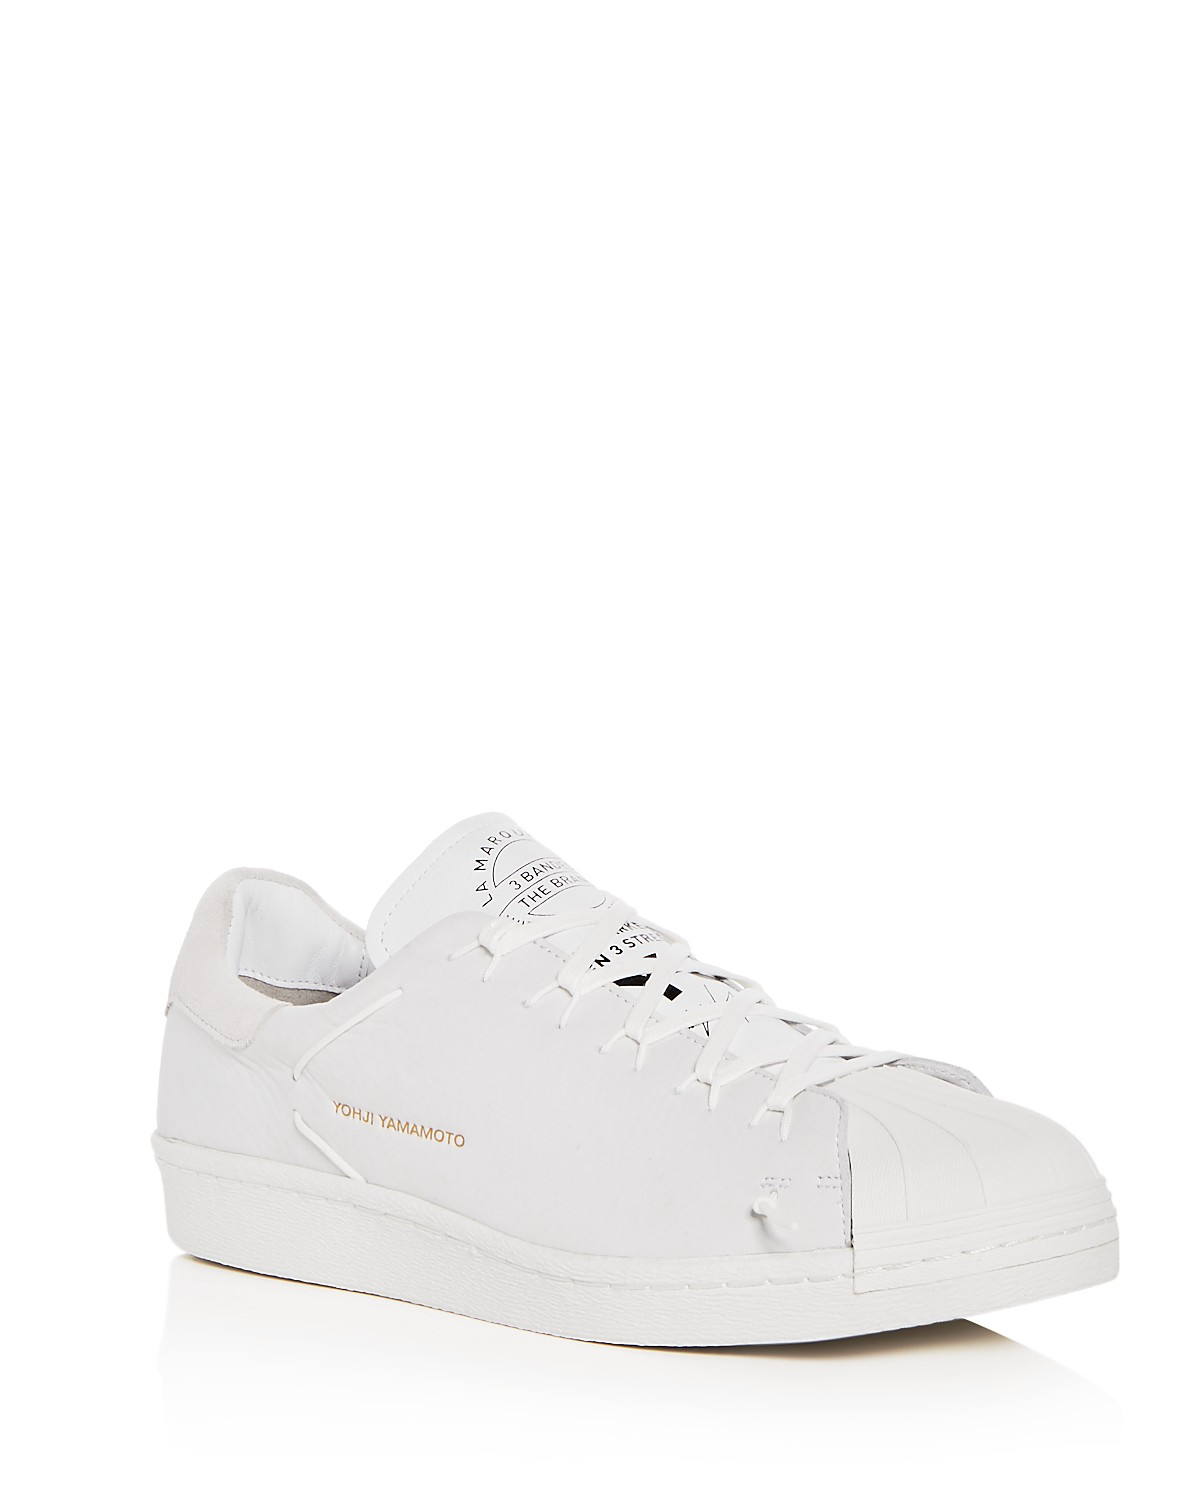 Y-3 Men's Super Knot Nubuck Leather Lace Up Sneakers 0rPrMd